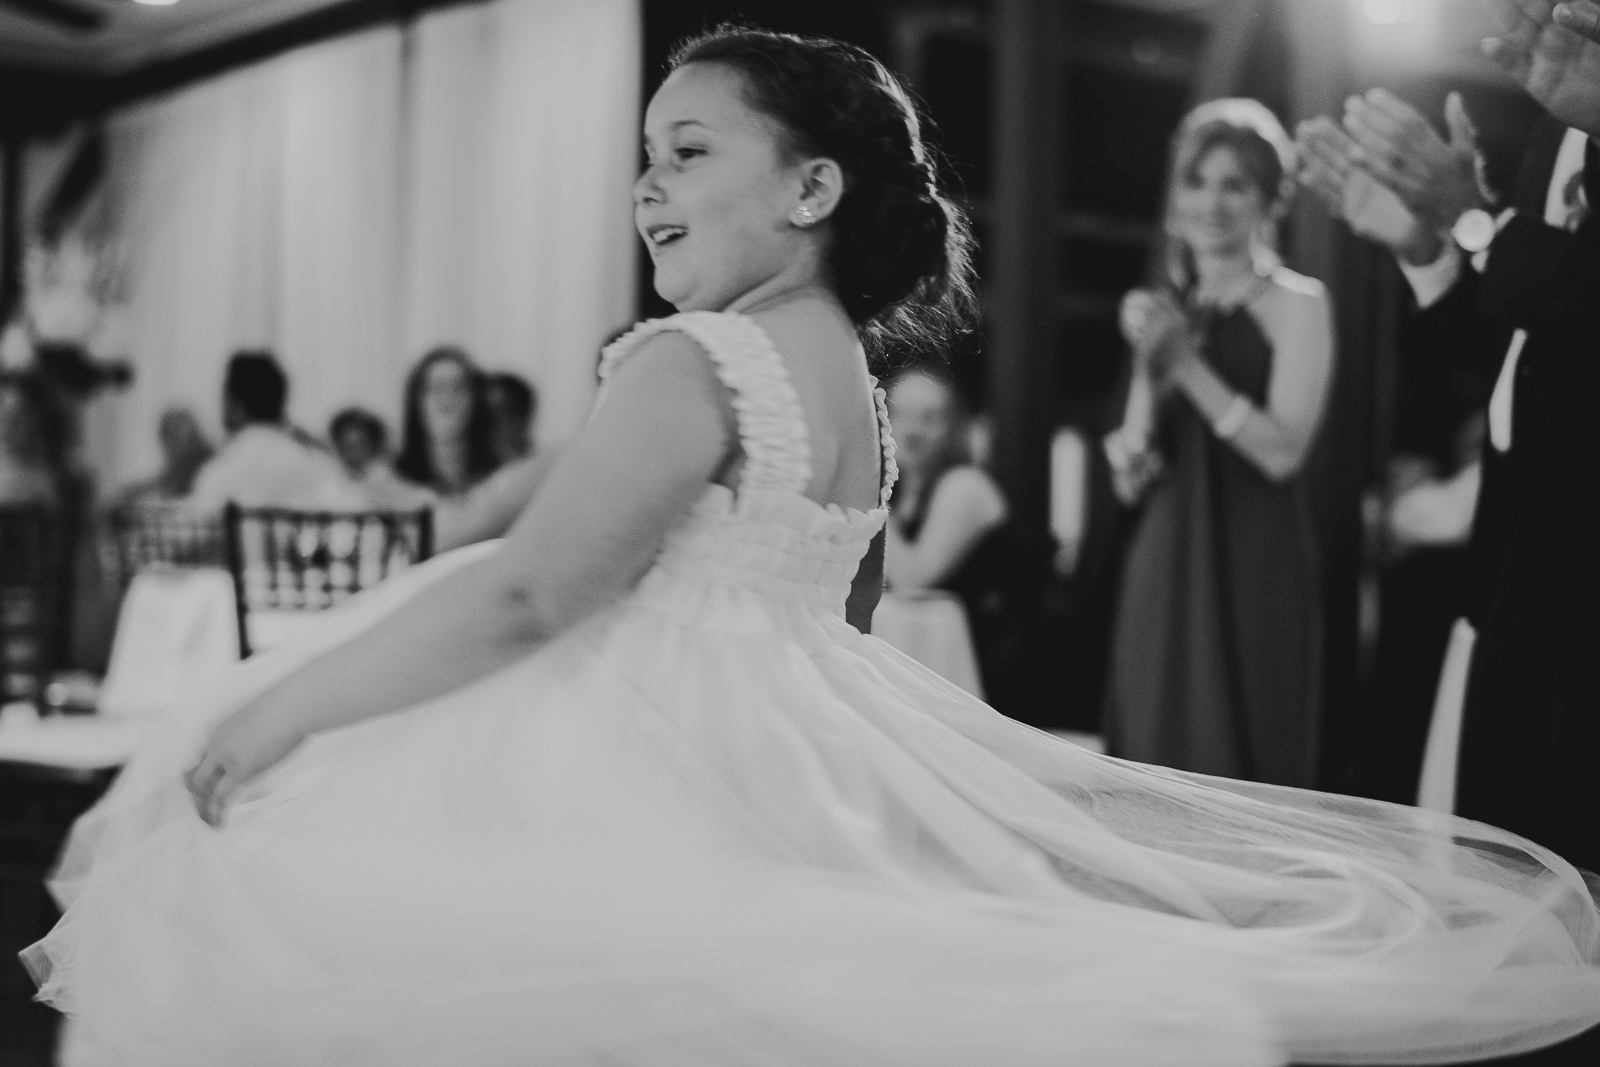 50 club of hillbrook black and white wedding - Club of Hillbrook Wedding // Jenna + Ben